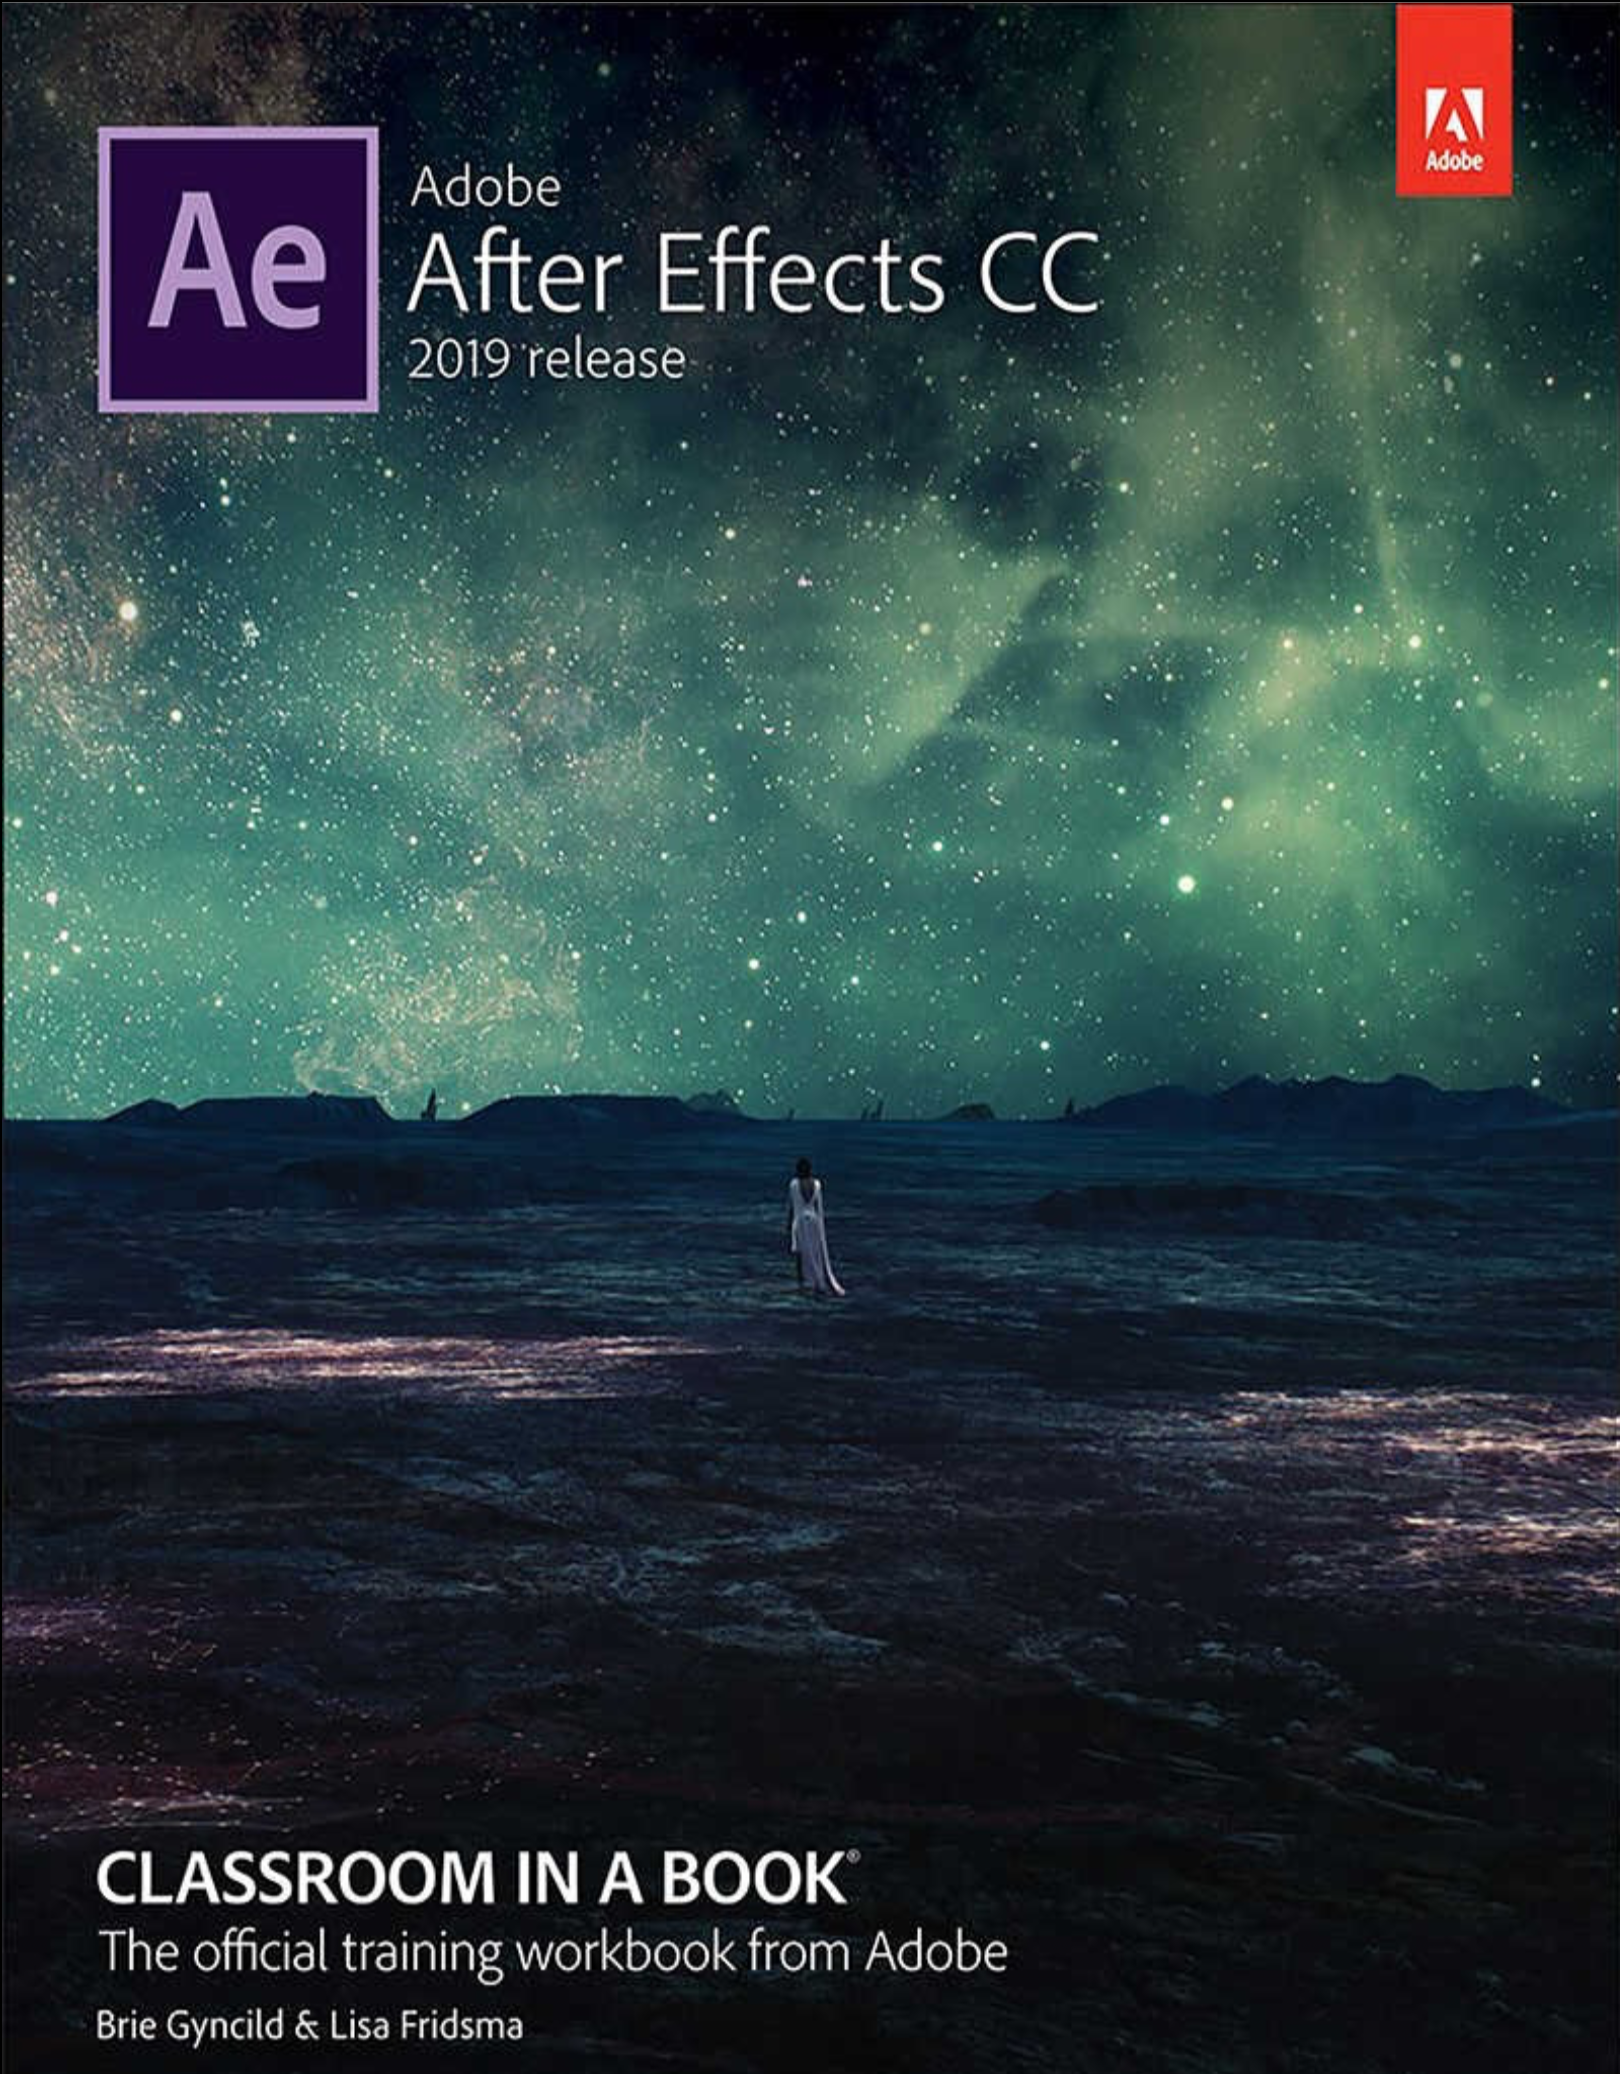 Adobe After Effects CC Classroom in a Book (2019 Release) +